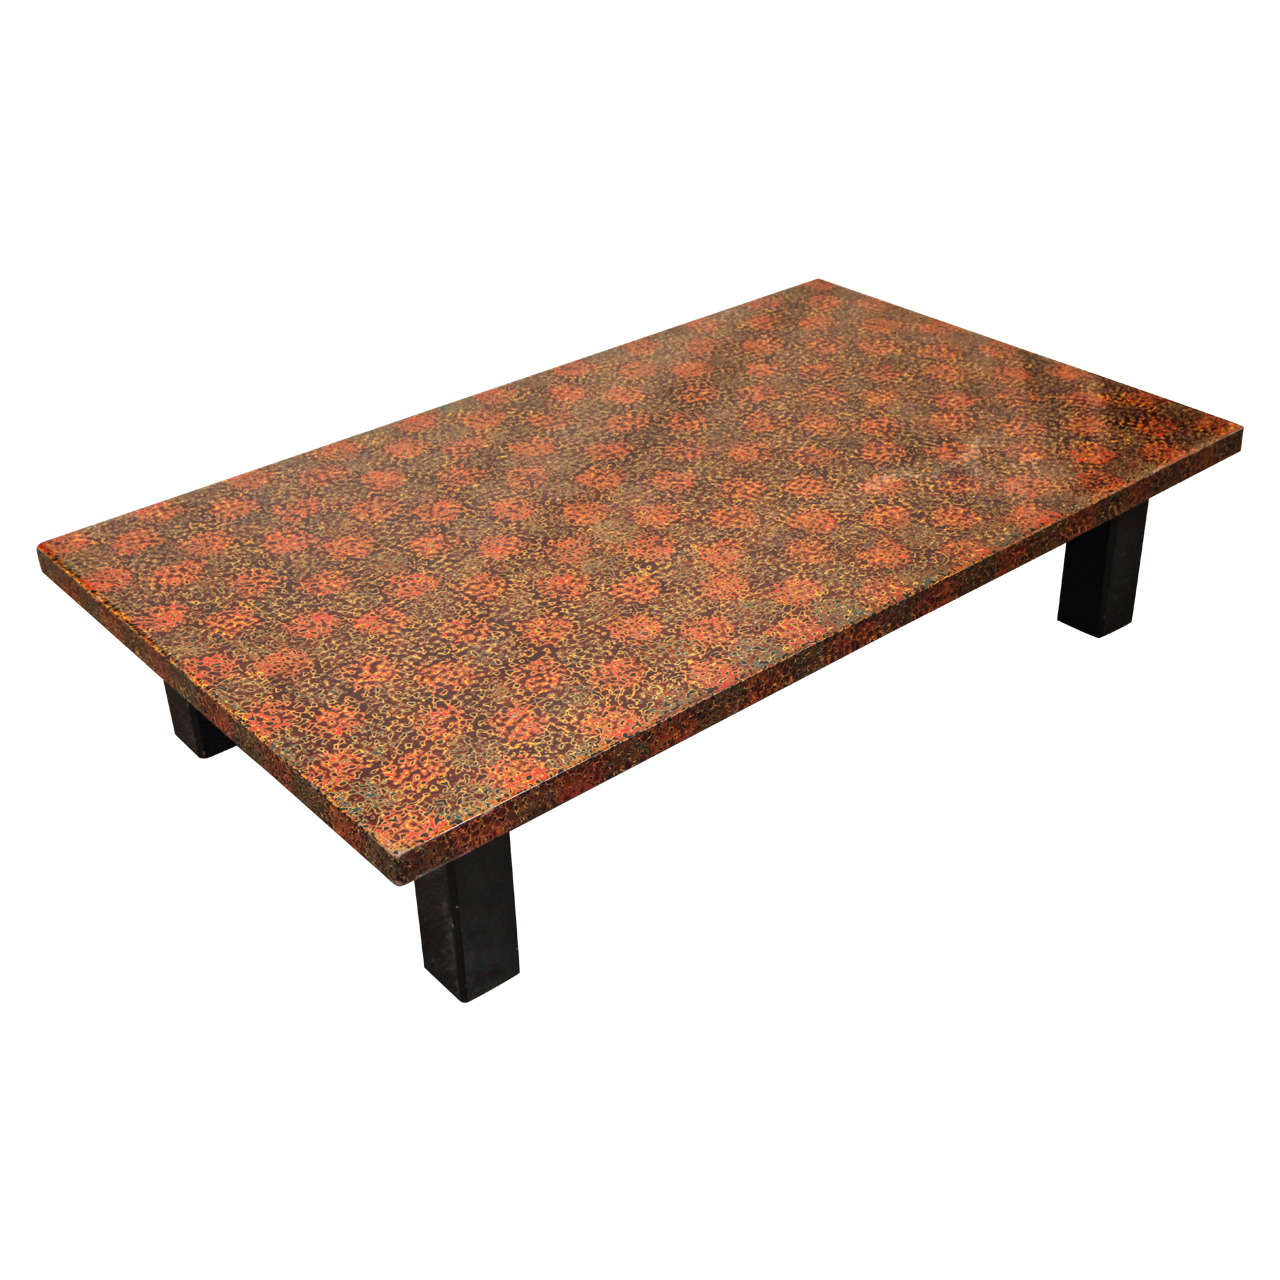 Low Multi Color Lacquer Top Coffee Table At 1stdibs